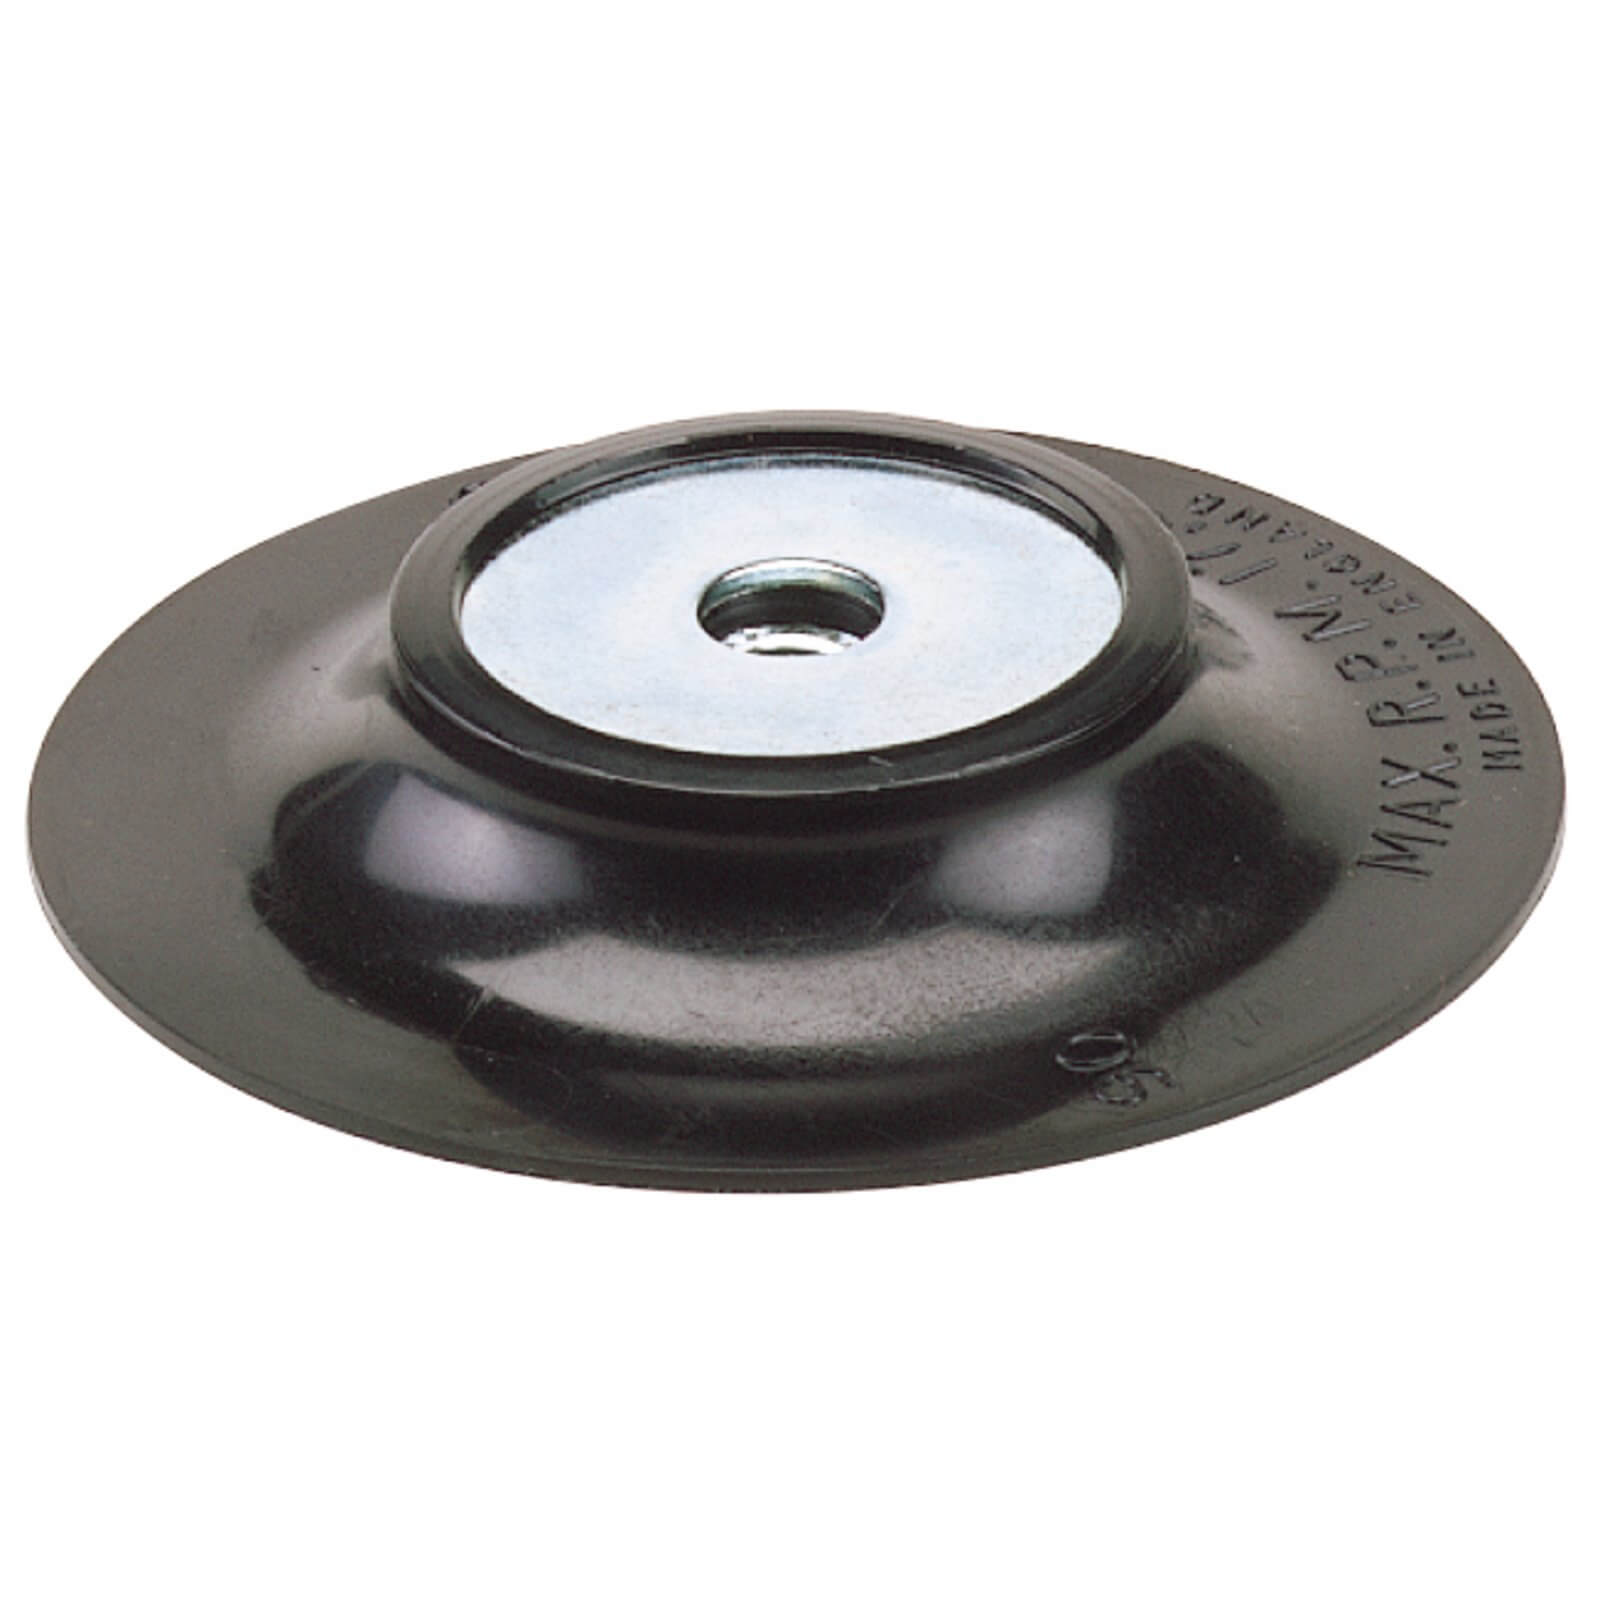 Image of Draper Angle Grinder Backing Pad 100mm